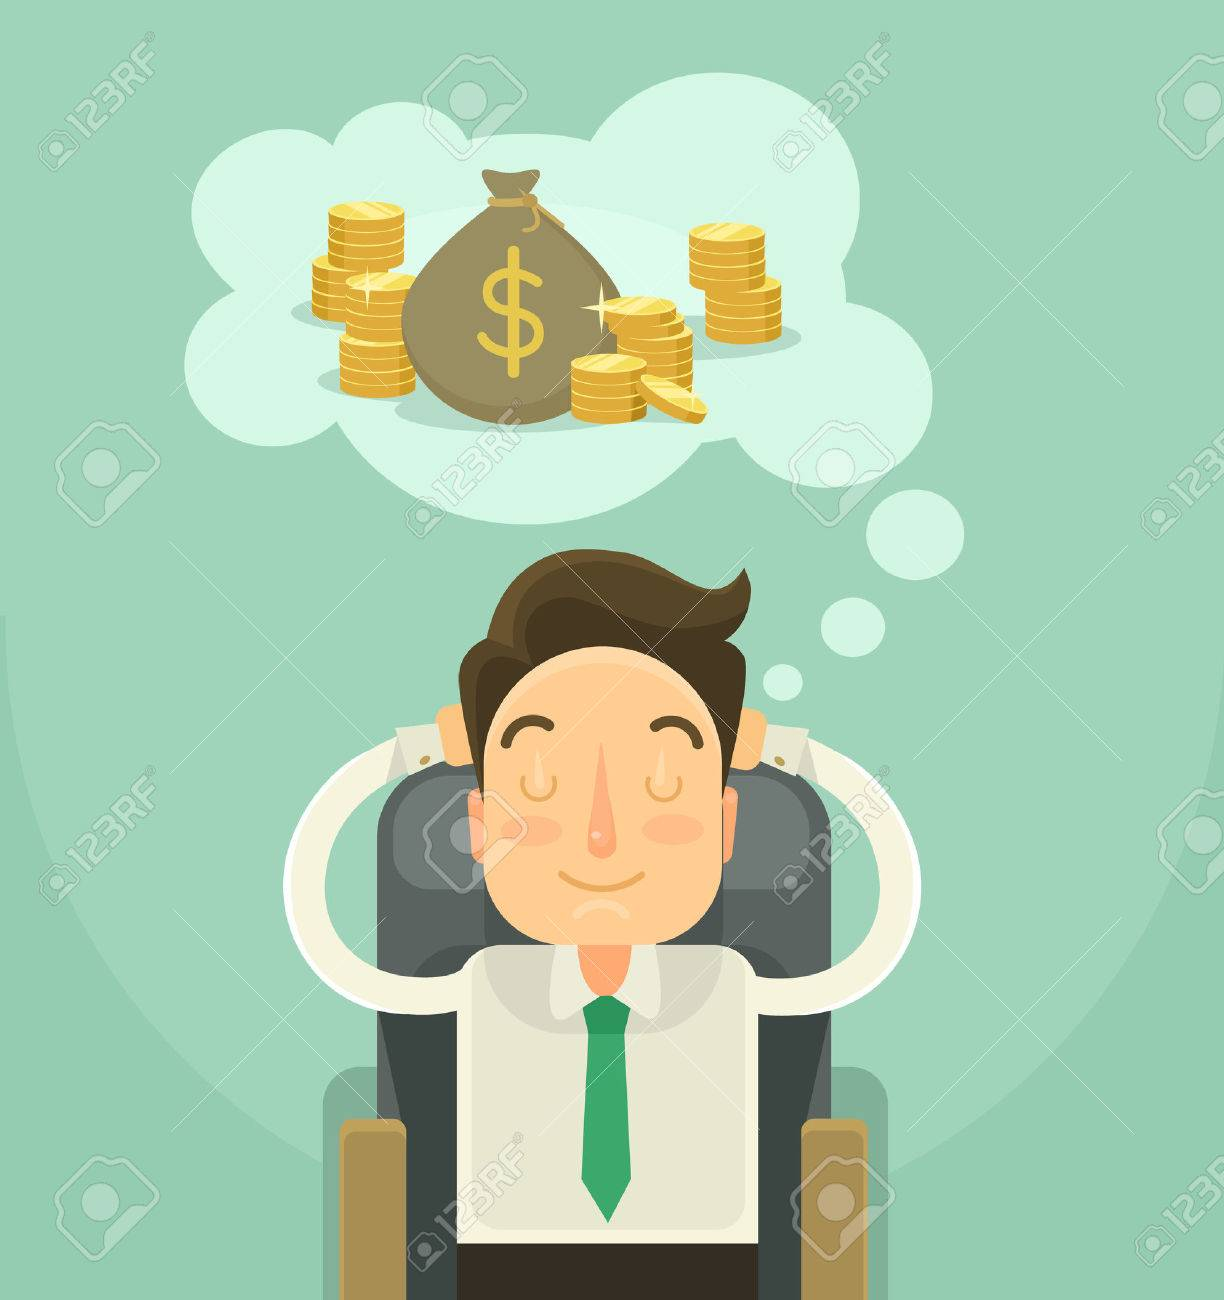 Businessman dreaming about money. Vector flat illustration - 45454061